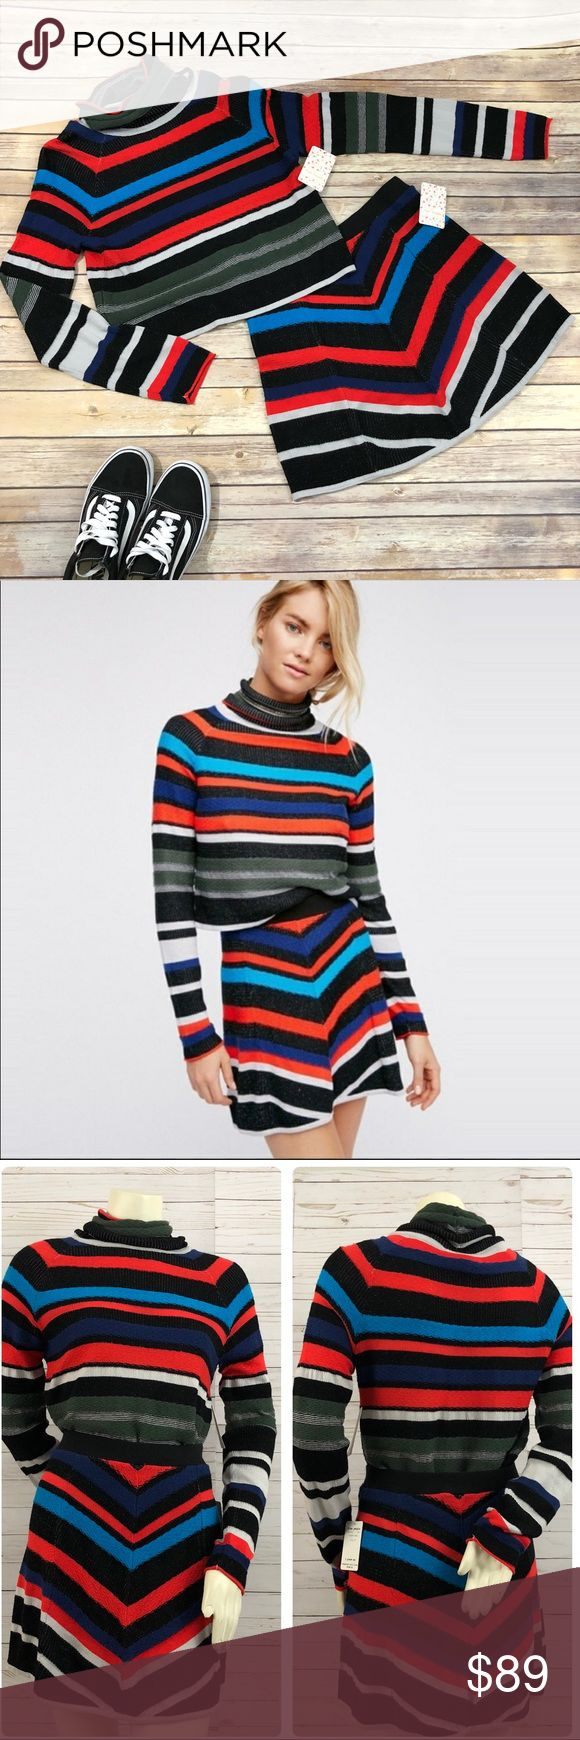 NWT Free People what a flirt sweater & skirt set NWT Free People what a flirt mini skirt and sweater set. Striped knit with black, red, blue, green and light gray. Sweater has a turtleneck cowl neck and long sleeves. Skirt is a mini with a chevron pattern and elastic waistband. You can wear them together or separate. You could wear the sweater with a pair of jeans. The skirt could be worn with a plain black top. Giving you lots of style options.   Hand wash.  60 rayon, 31 cotton, 9 lyocell…